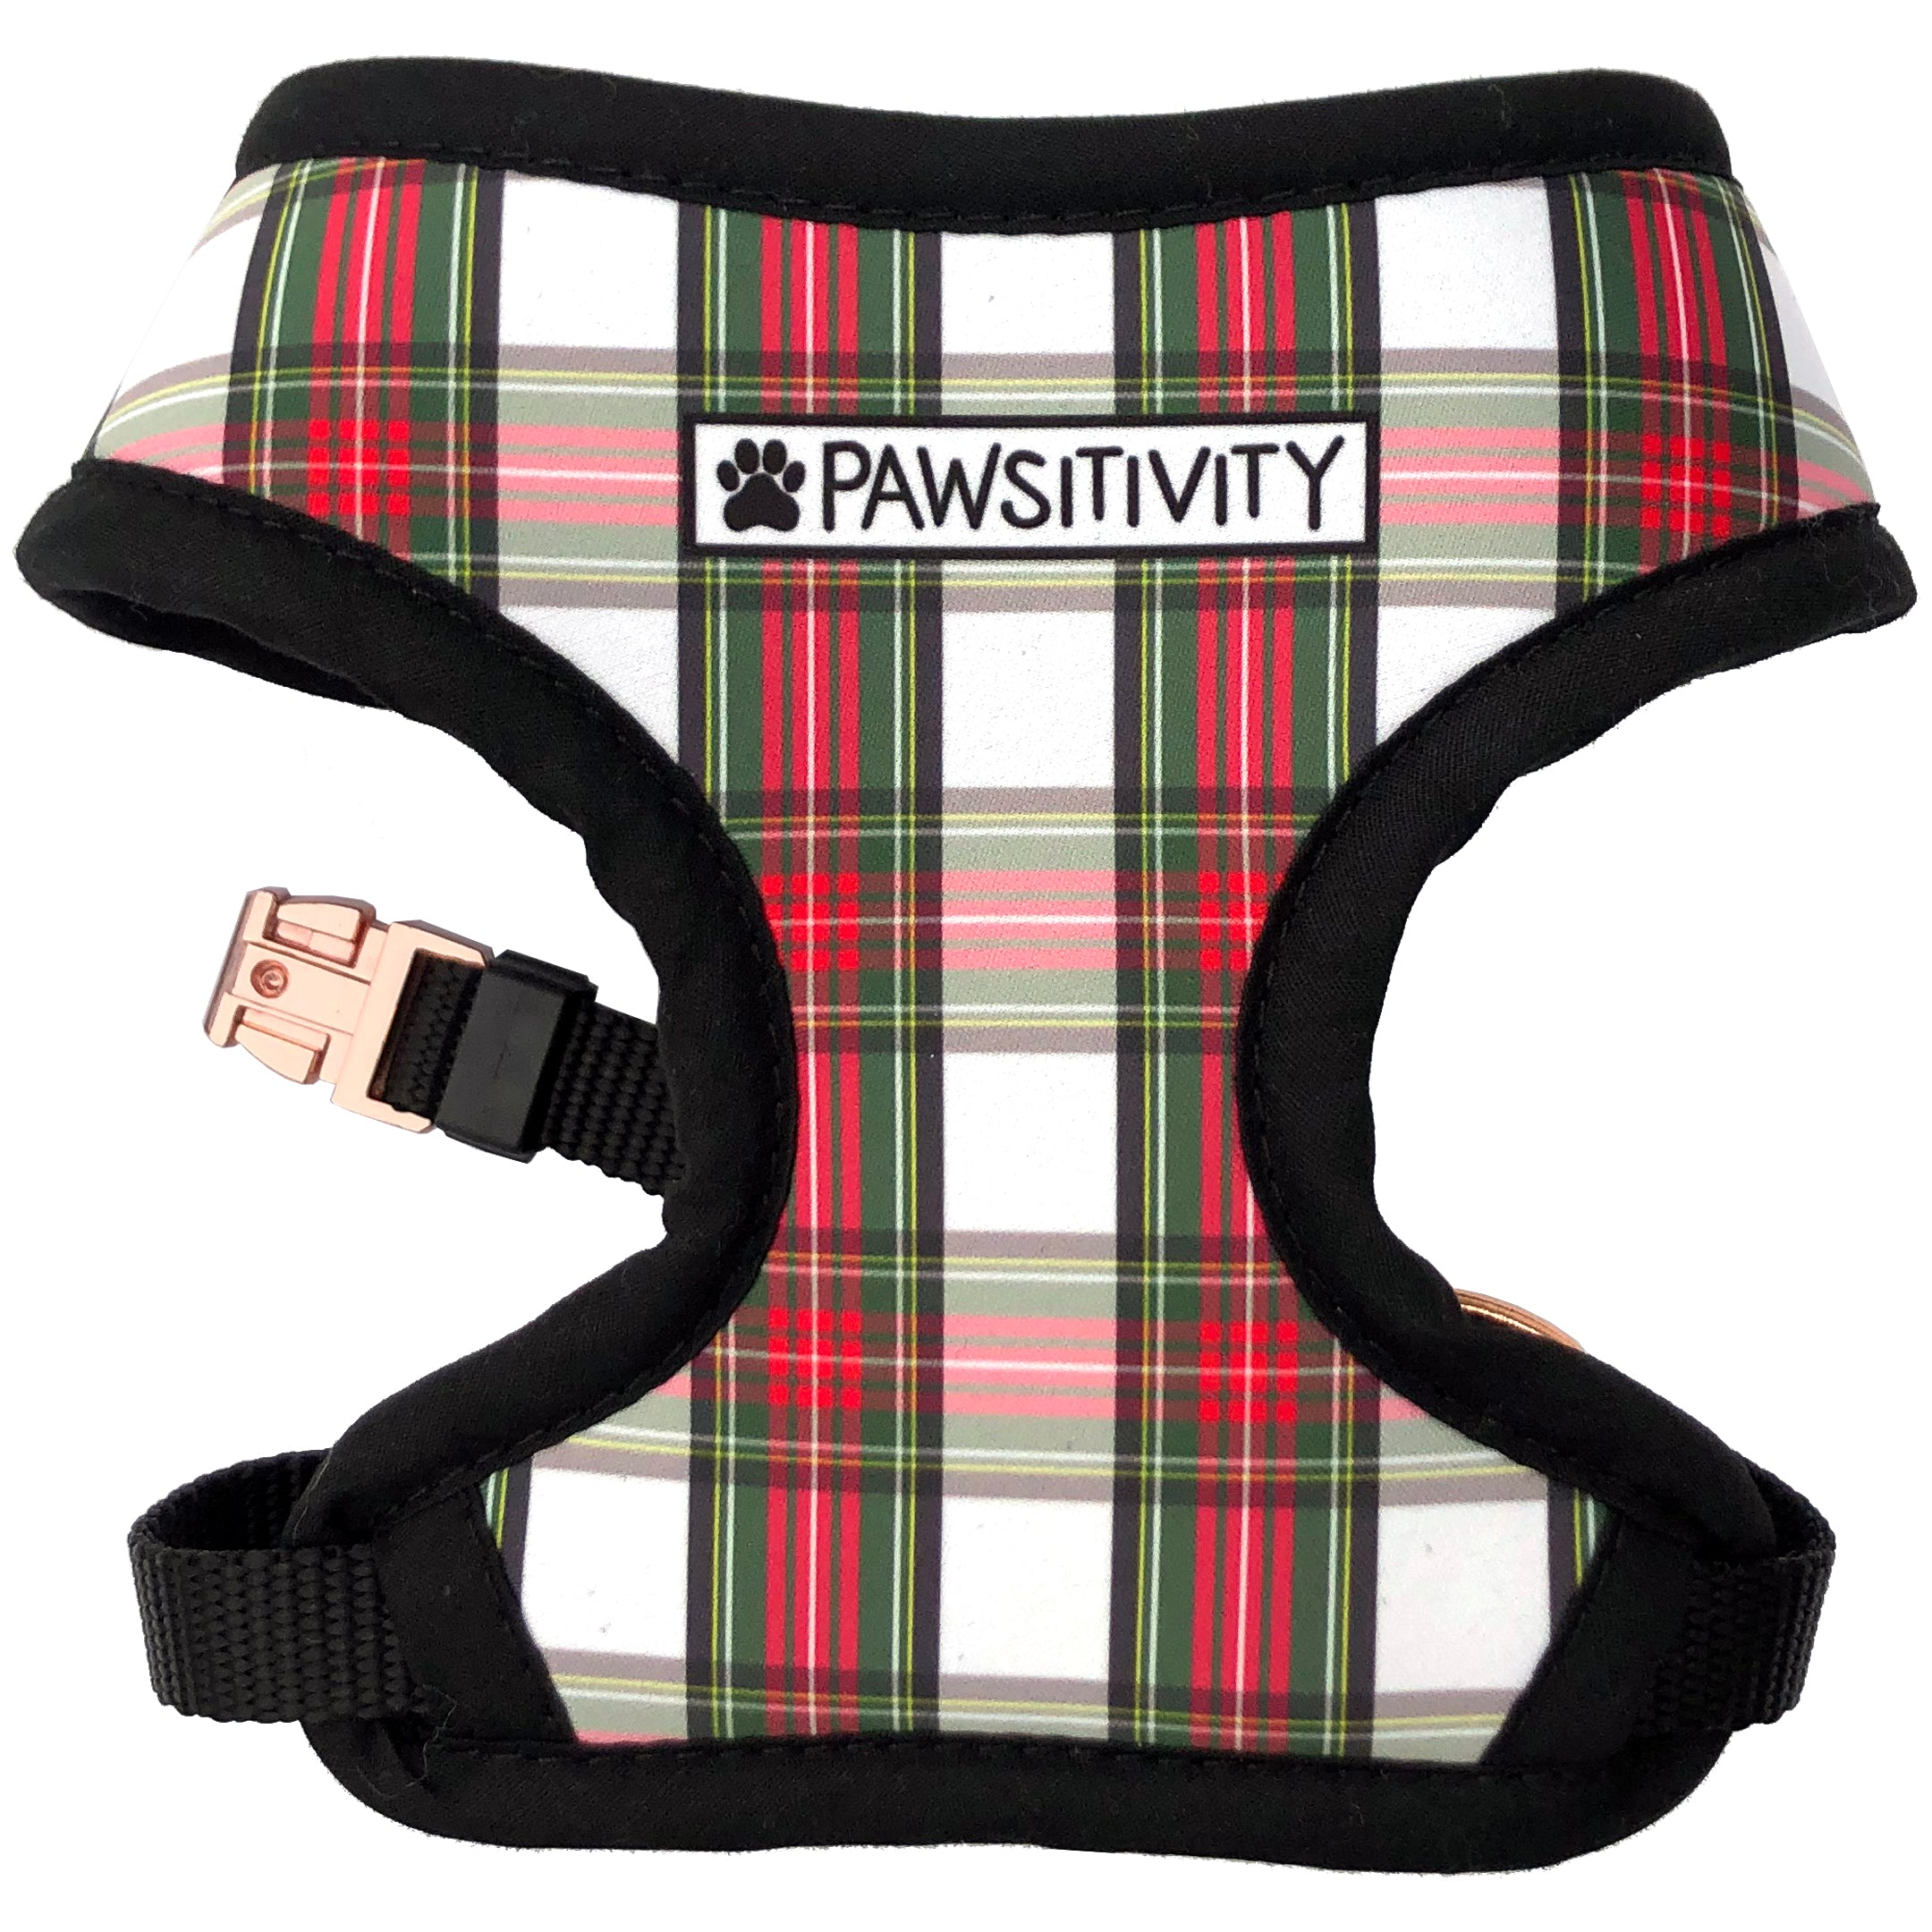 Pawsitivity Reversible Harness - Winter Sweater & Holiday Plaid